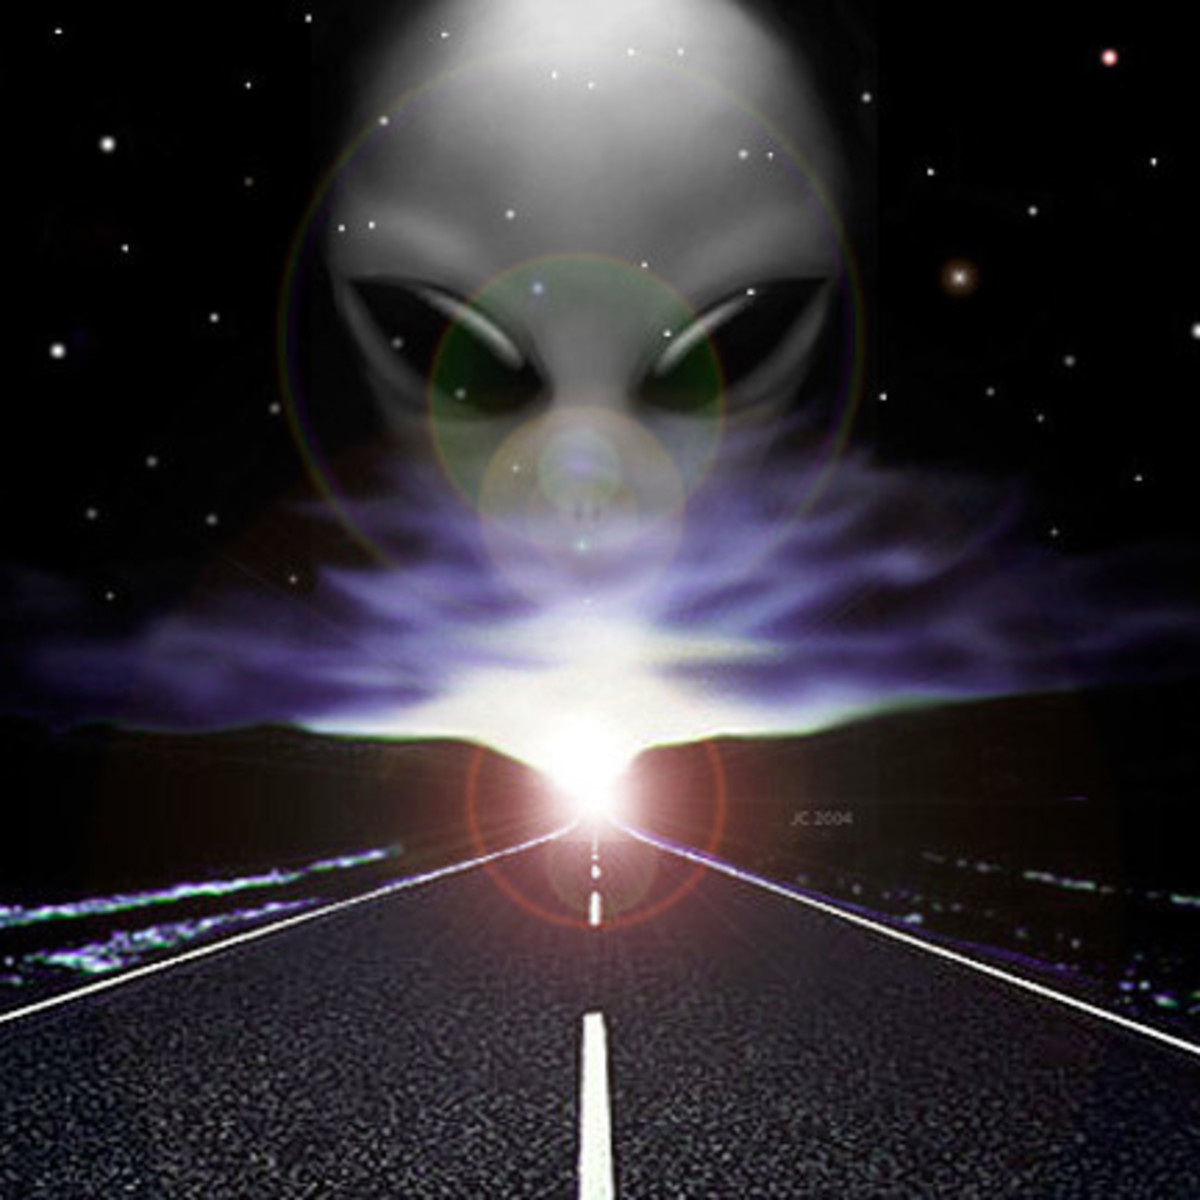 The truth is out there. I really believe that UFO's do exist. How about you? What do you think about UFO's and Aliens?